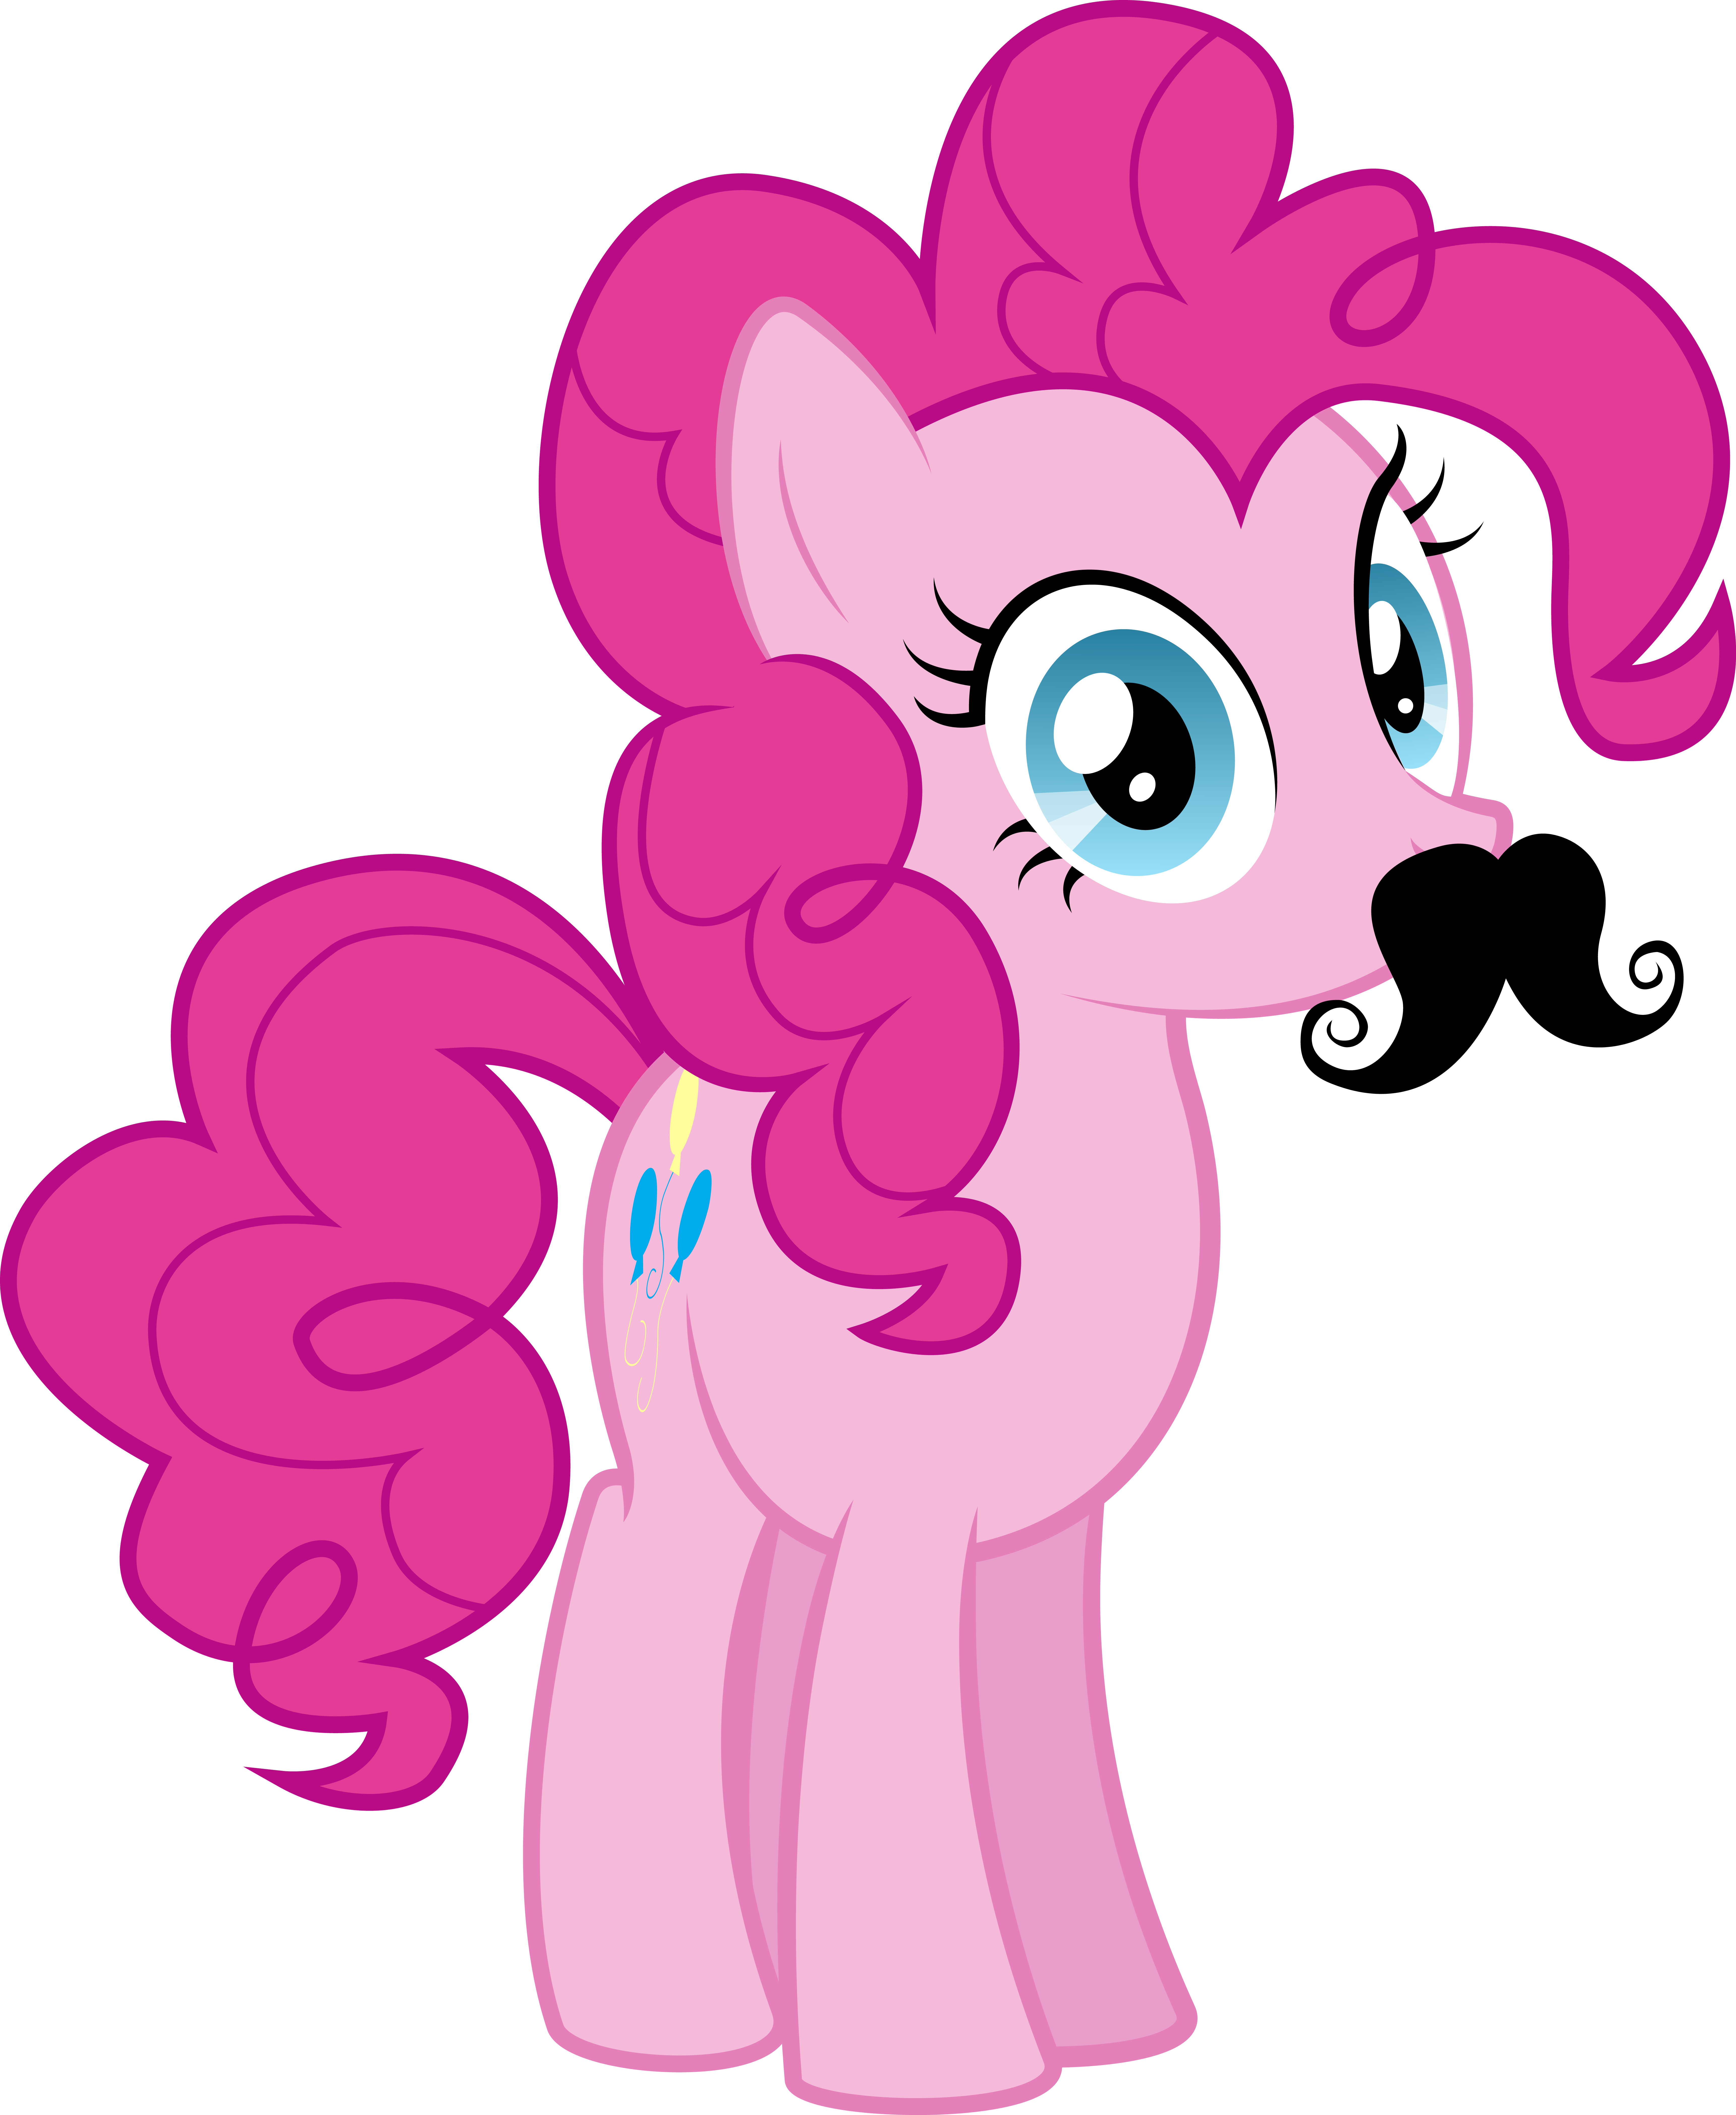 Moustache Pinkie Pie by Silentmatten